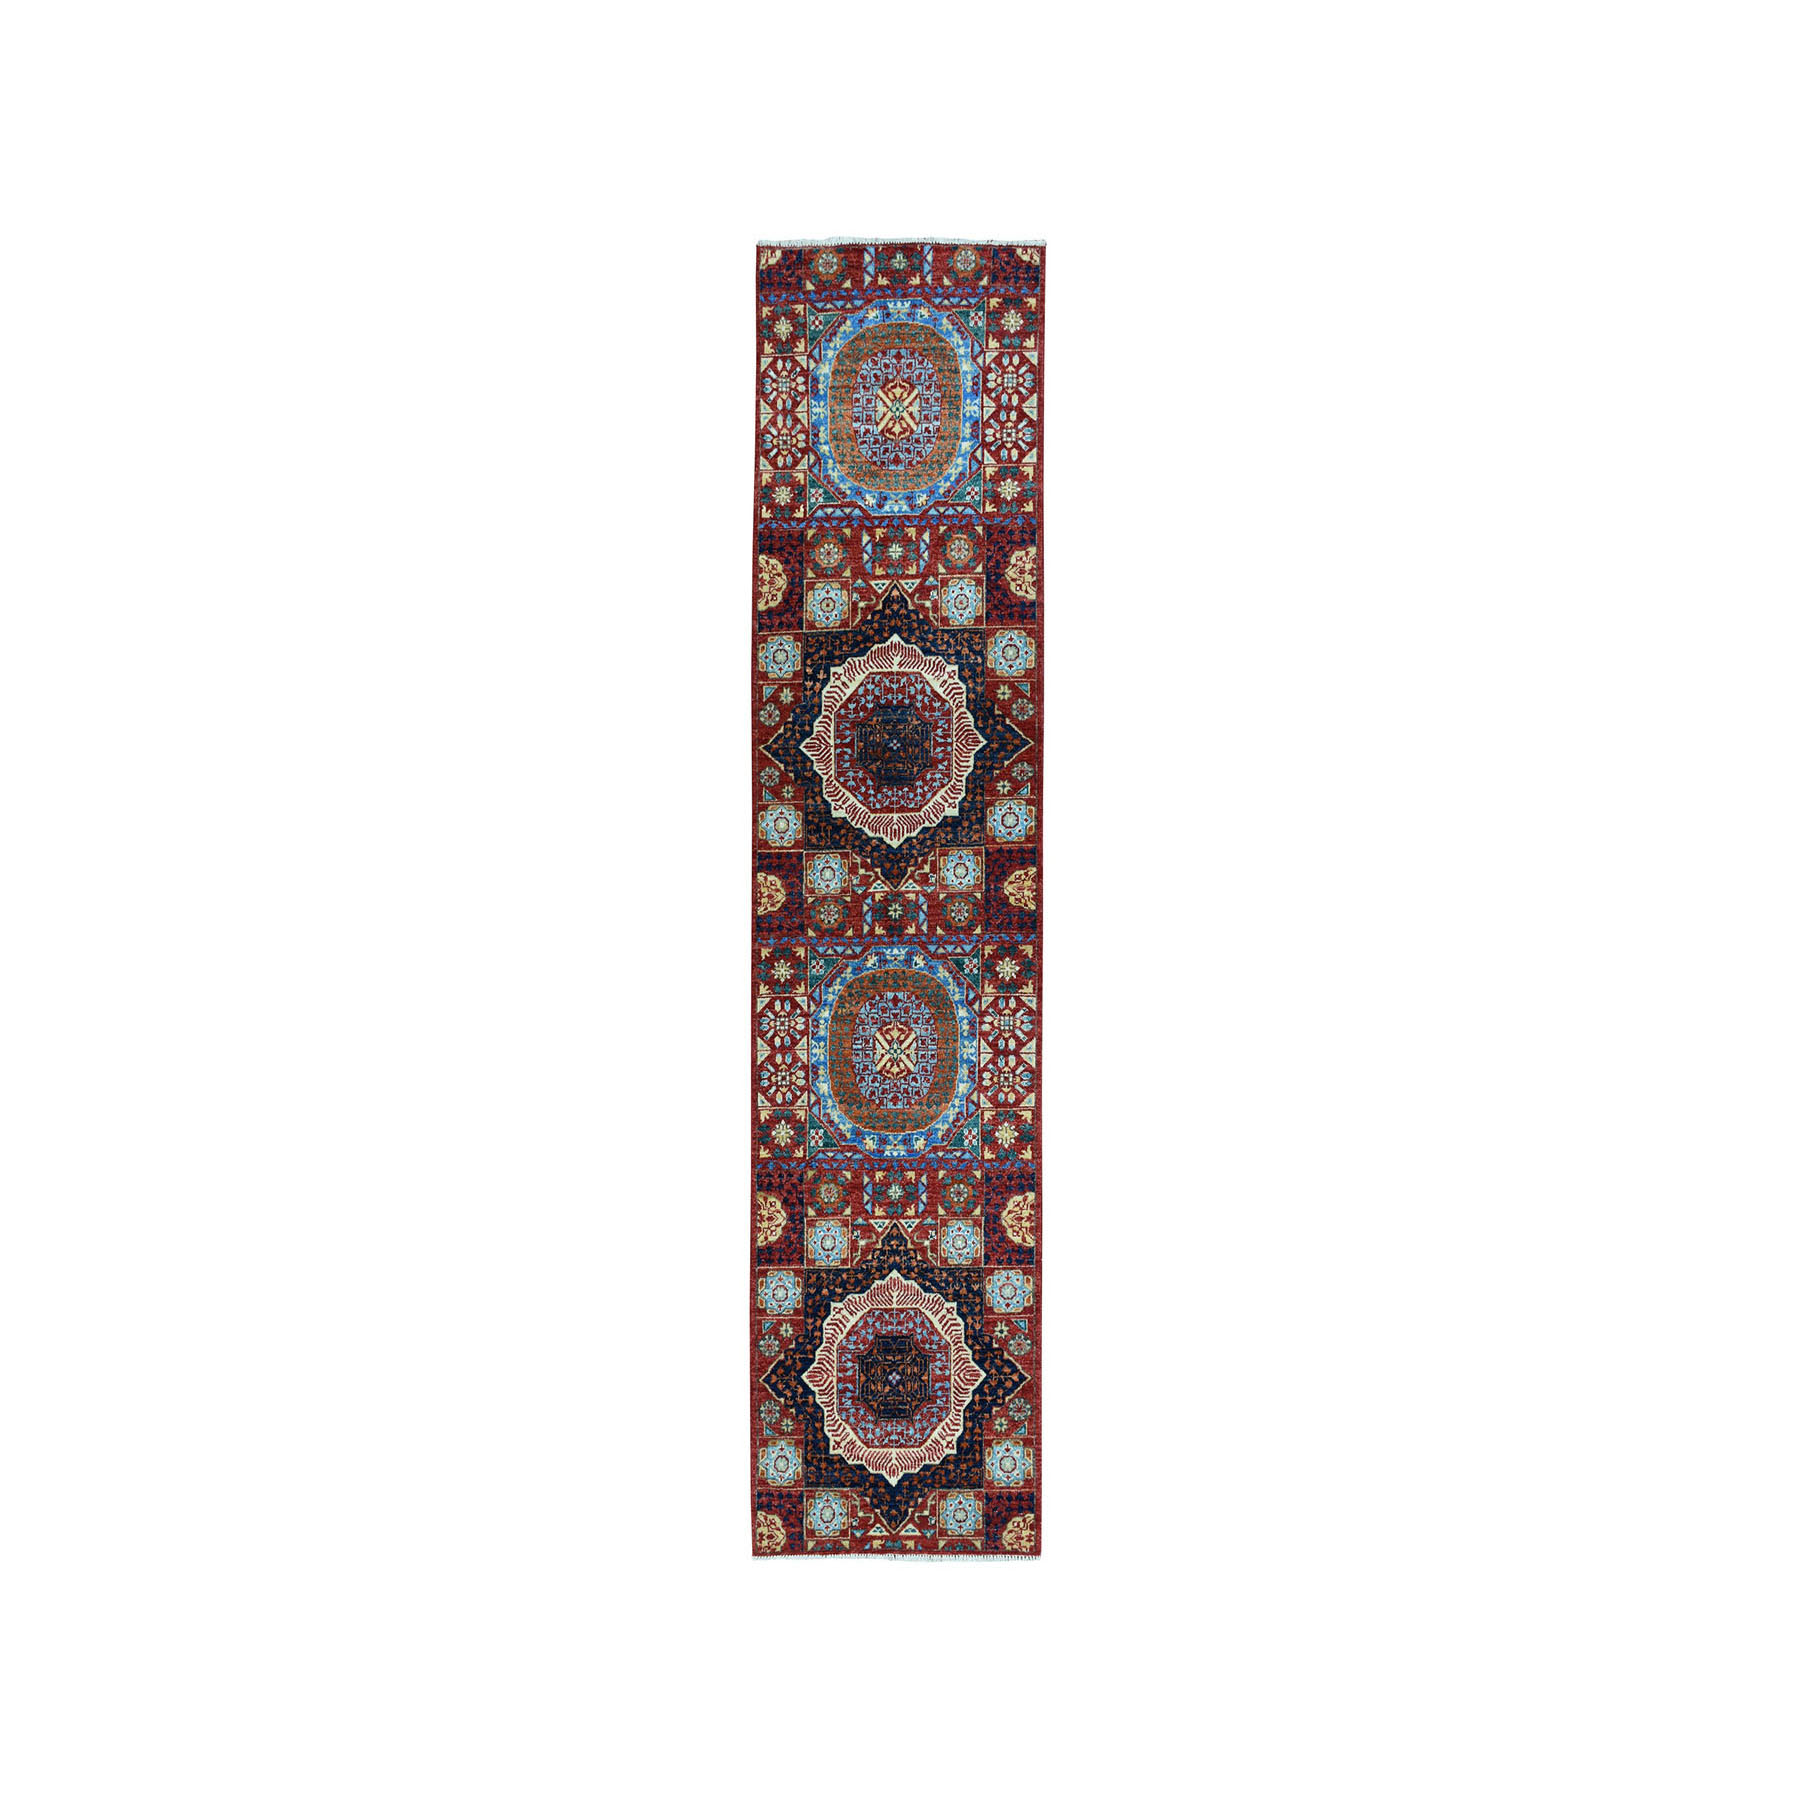 "2'10""x10' Colorful Peshawar Mamluk Design Pure Wool Hand-Knotted Runner Oriental Rug"